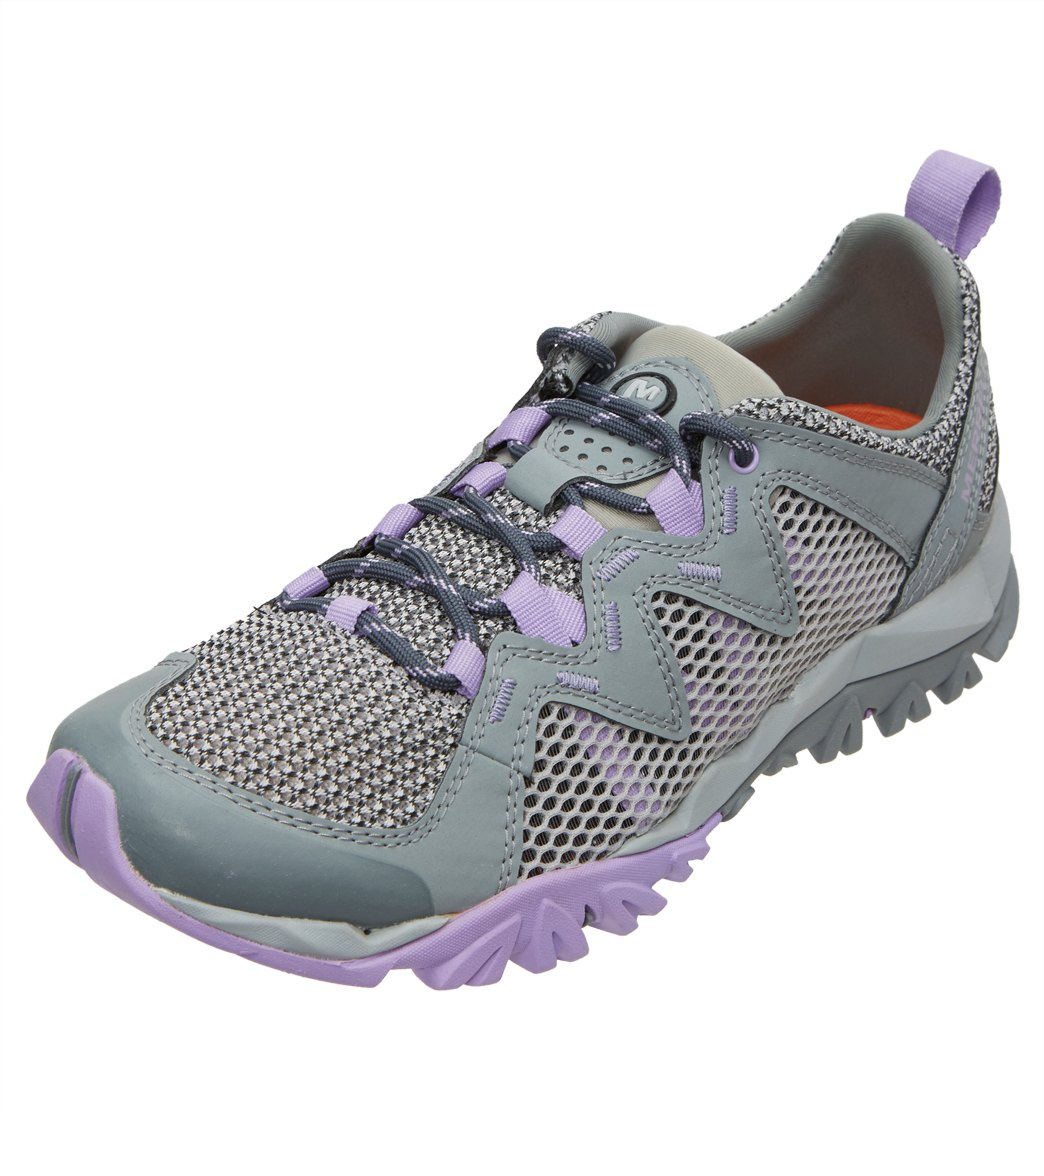 4ebc8f8a3ddb9f Merrell Women's Tetrex Rapid Crest Water Shoe at SwimOutlet.com - Free  Shipping